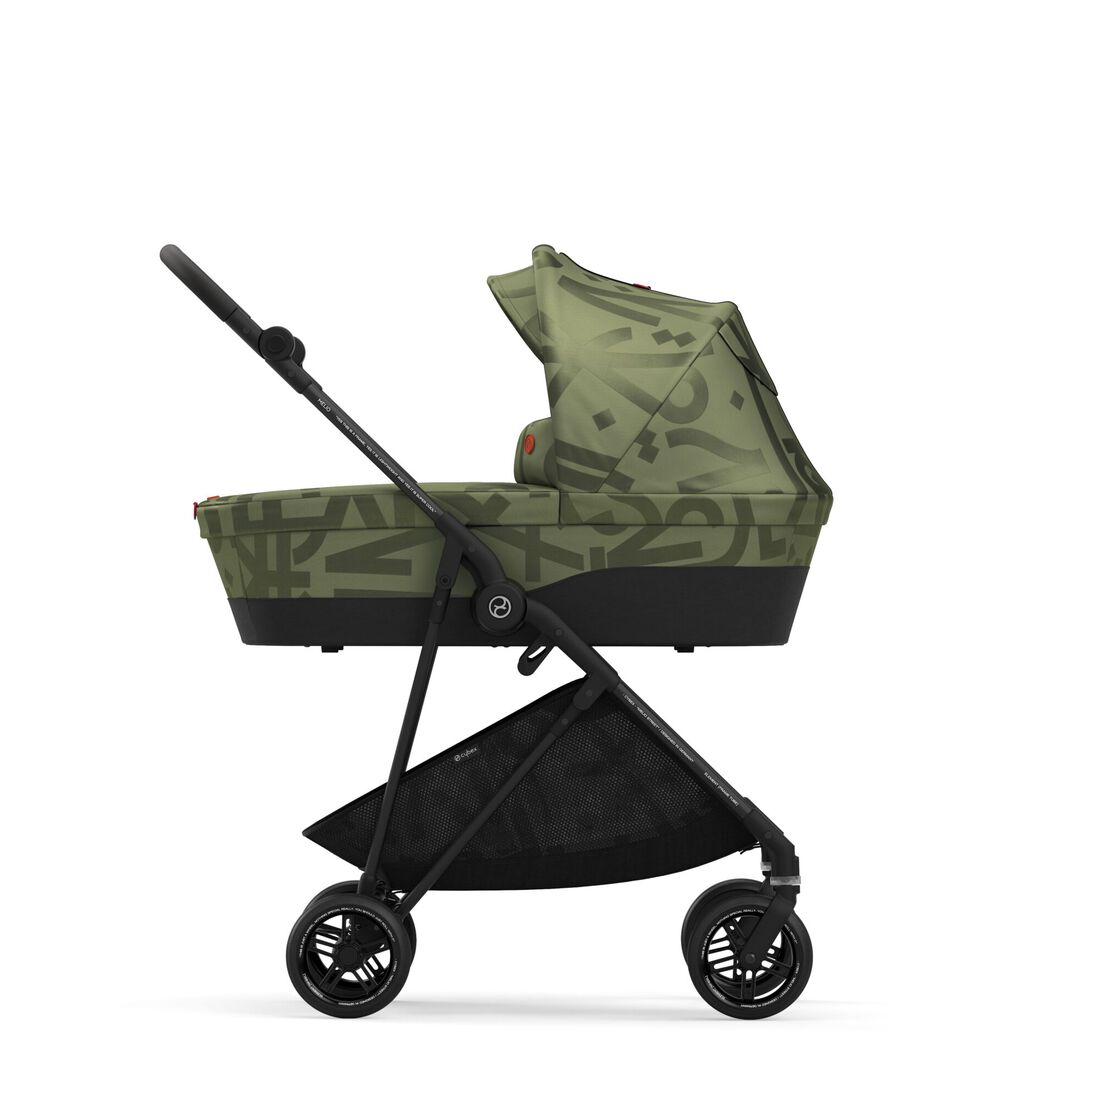 CYBEX Melio Cot - Olive Green in Olive Green large image number 6